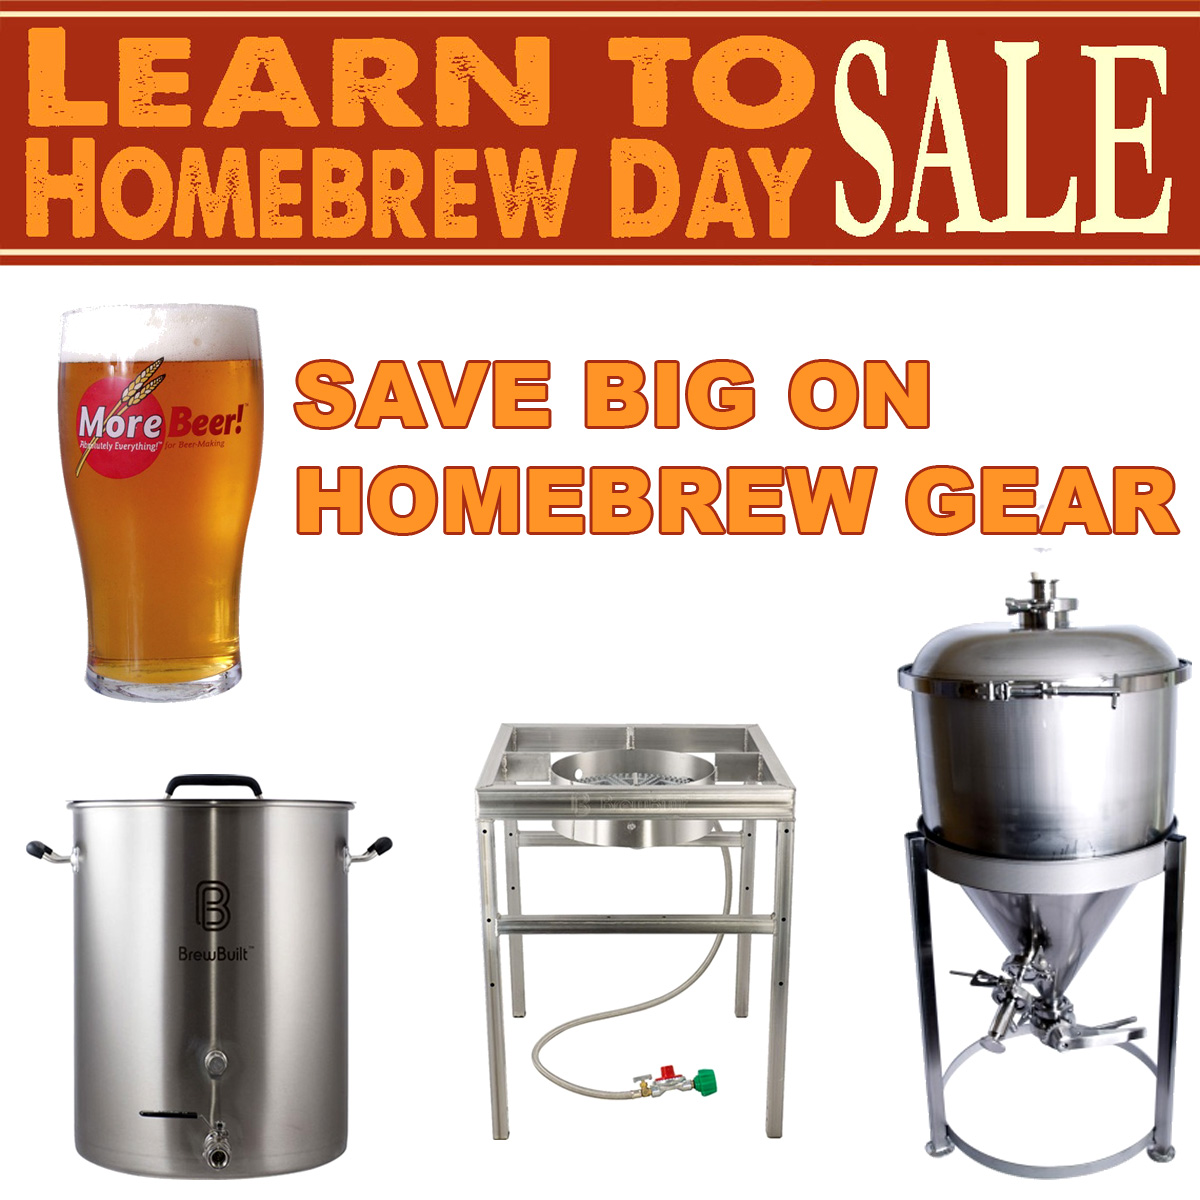 Save Up To 25% On Popular Home Brewing Items Coupon Code